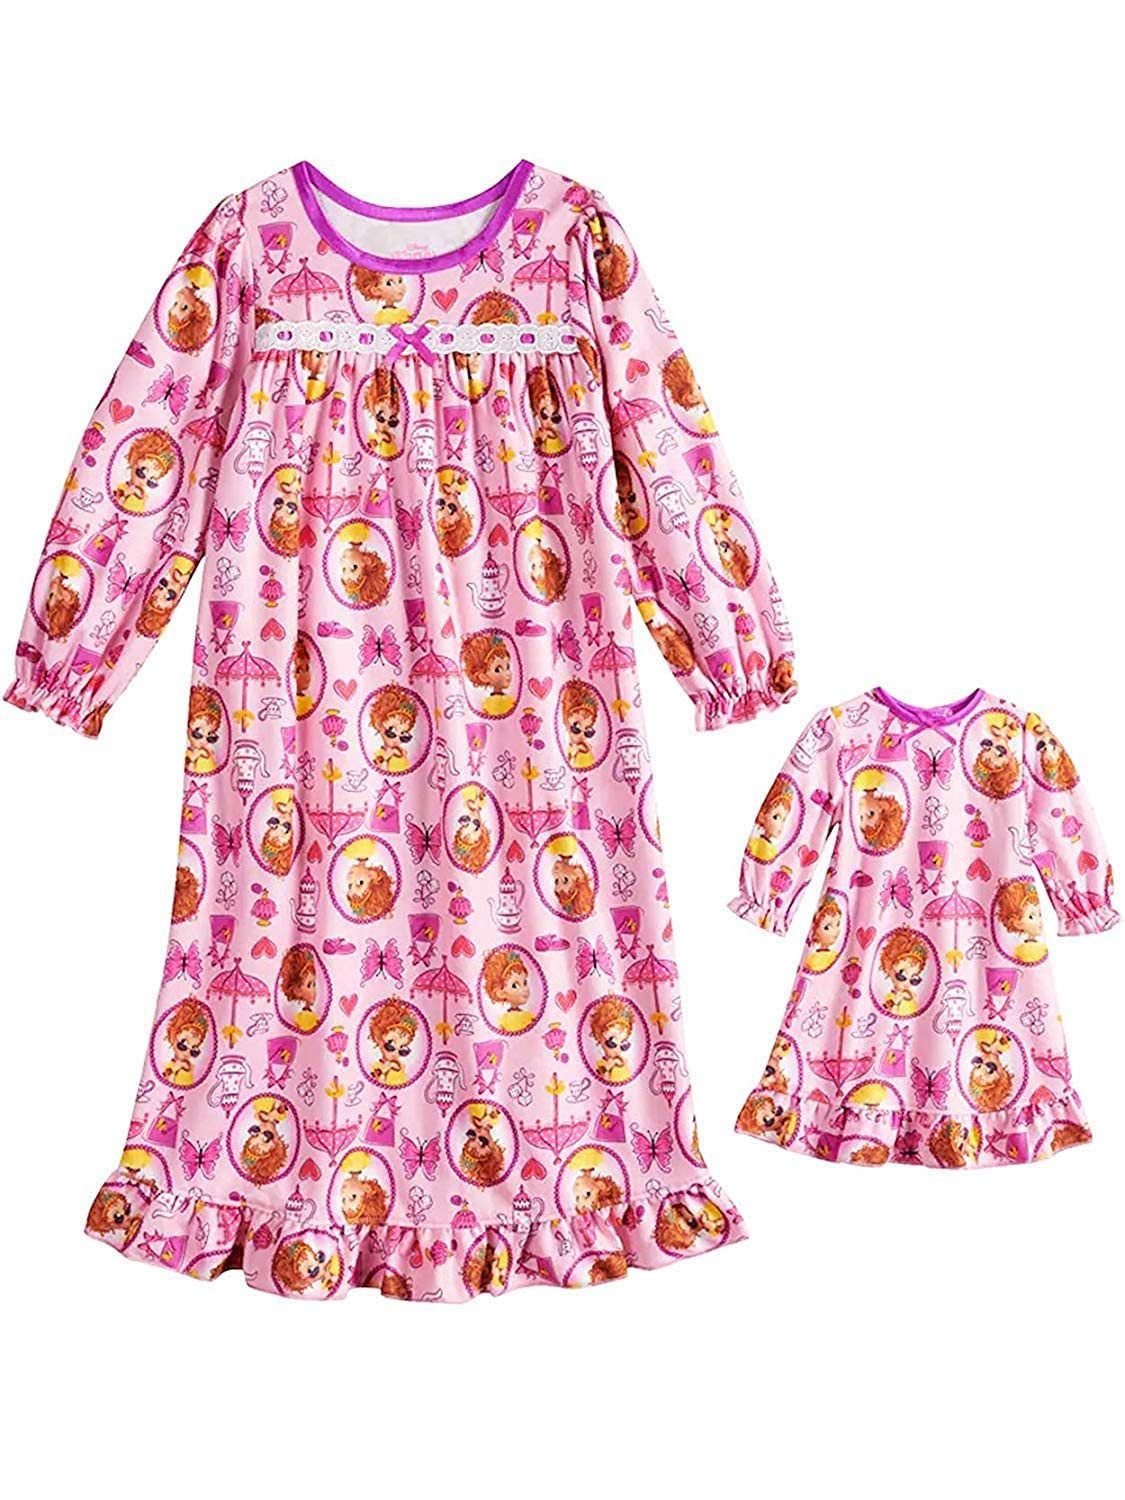 Disney Fancy Nancy Toddler Girls Flannel Granny Gown Nightgown Pajamas with Doll Gown Pink) manufacturer